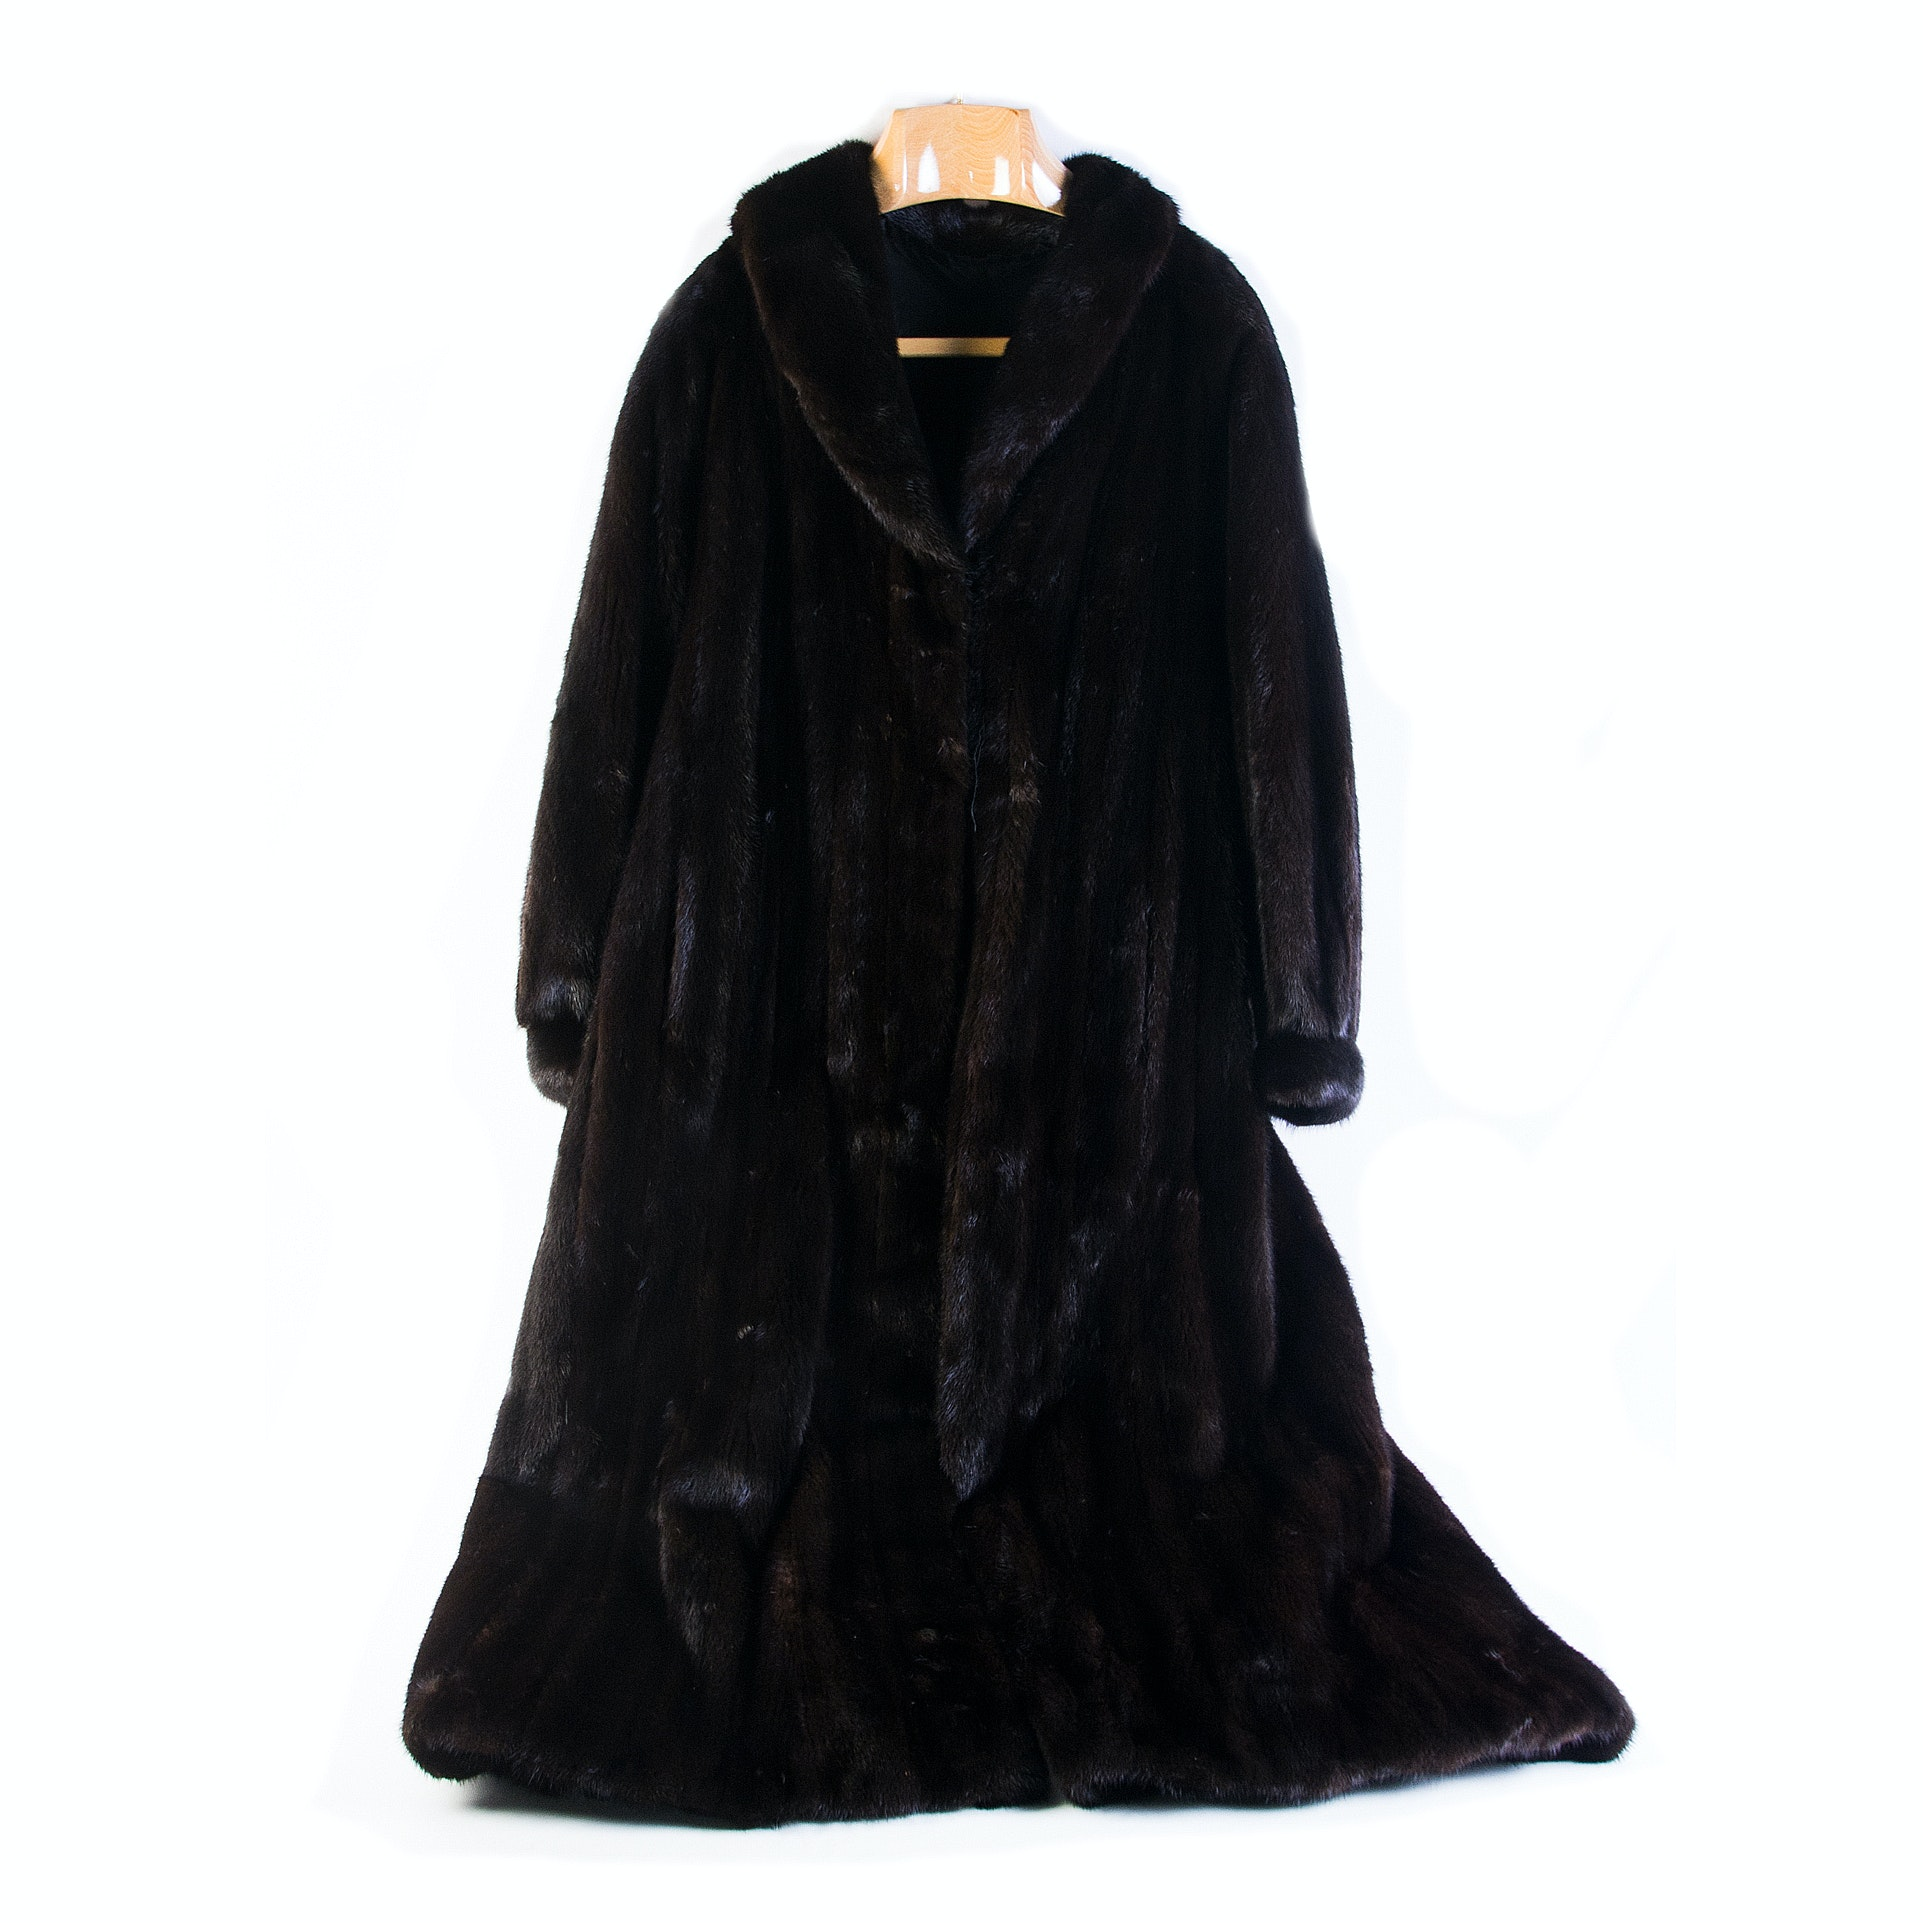 Luxurious Full-Length Black Mink Fur Coat